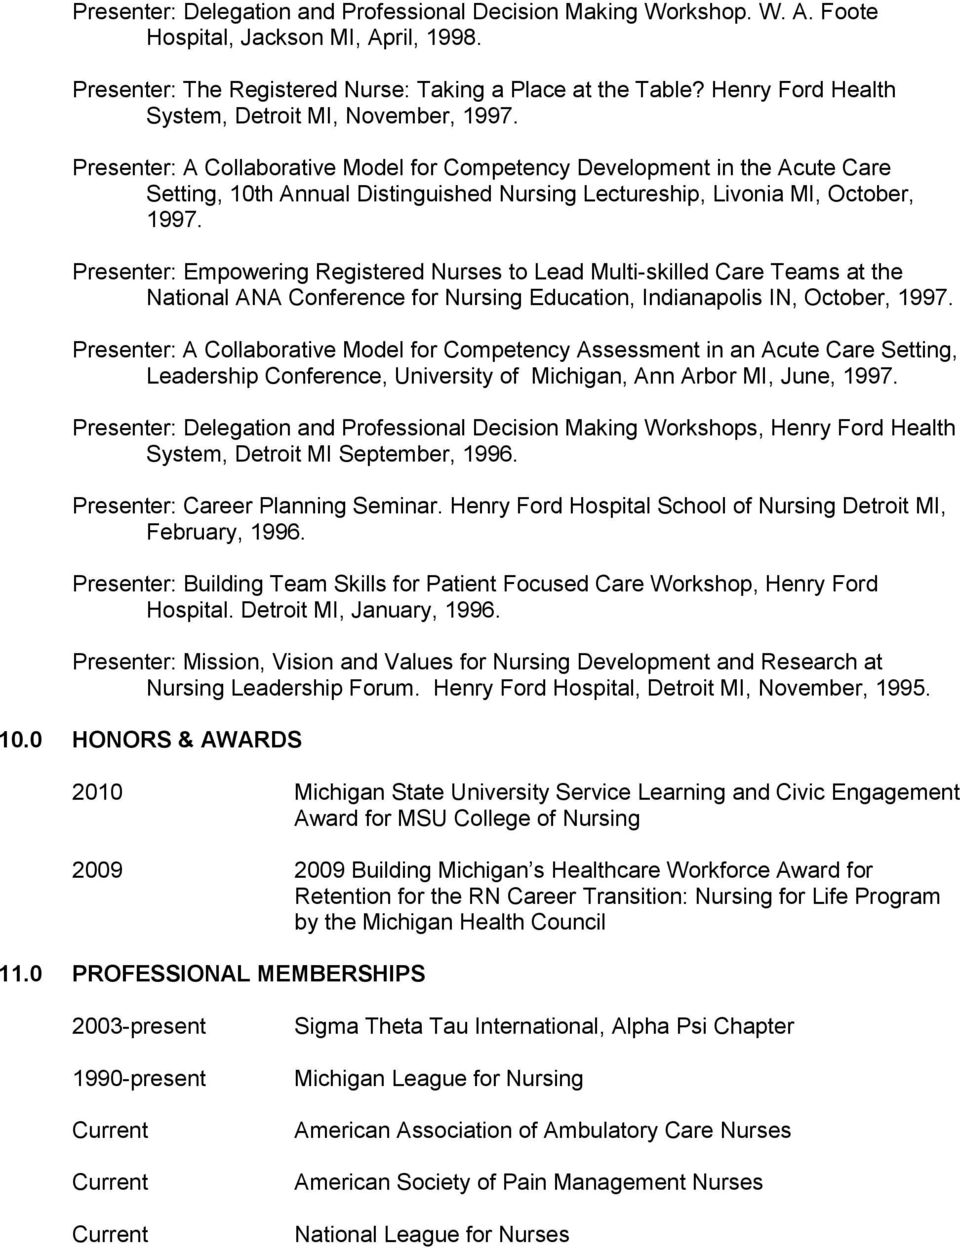 Presenter: A Collaborative Model for Competency Development in the Acute Care Setting, 10th Annual Distinguished Nursing Lectureship, Livonia MI, October, 1997.